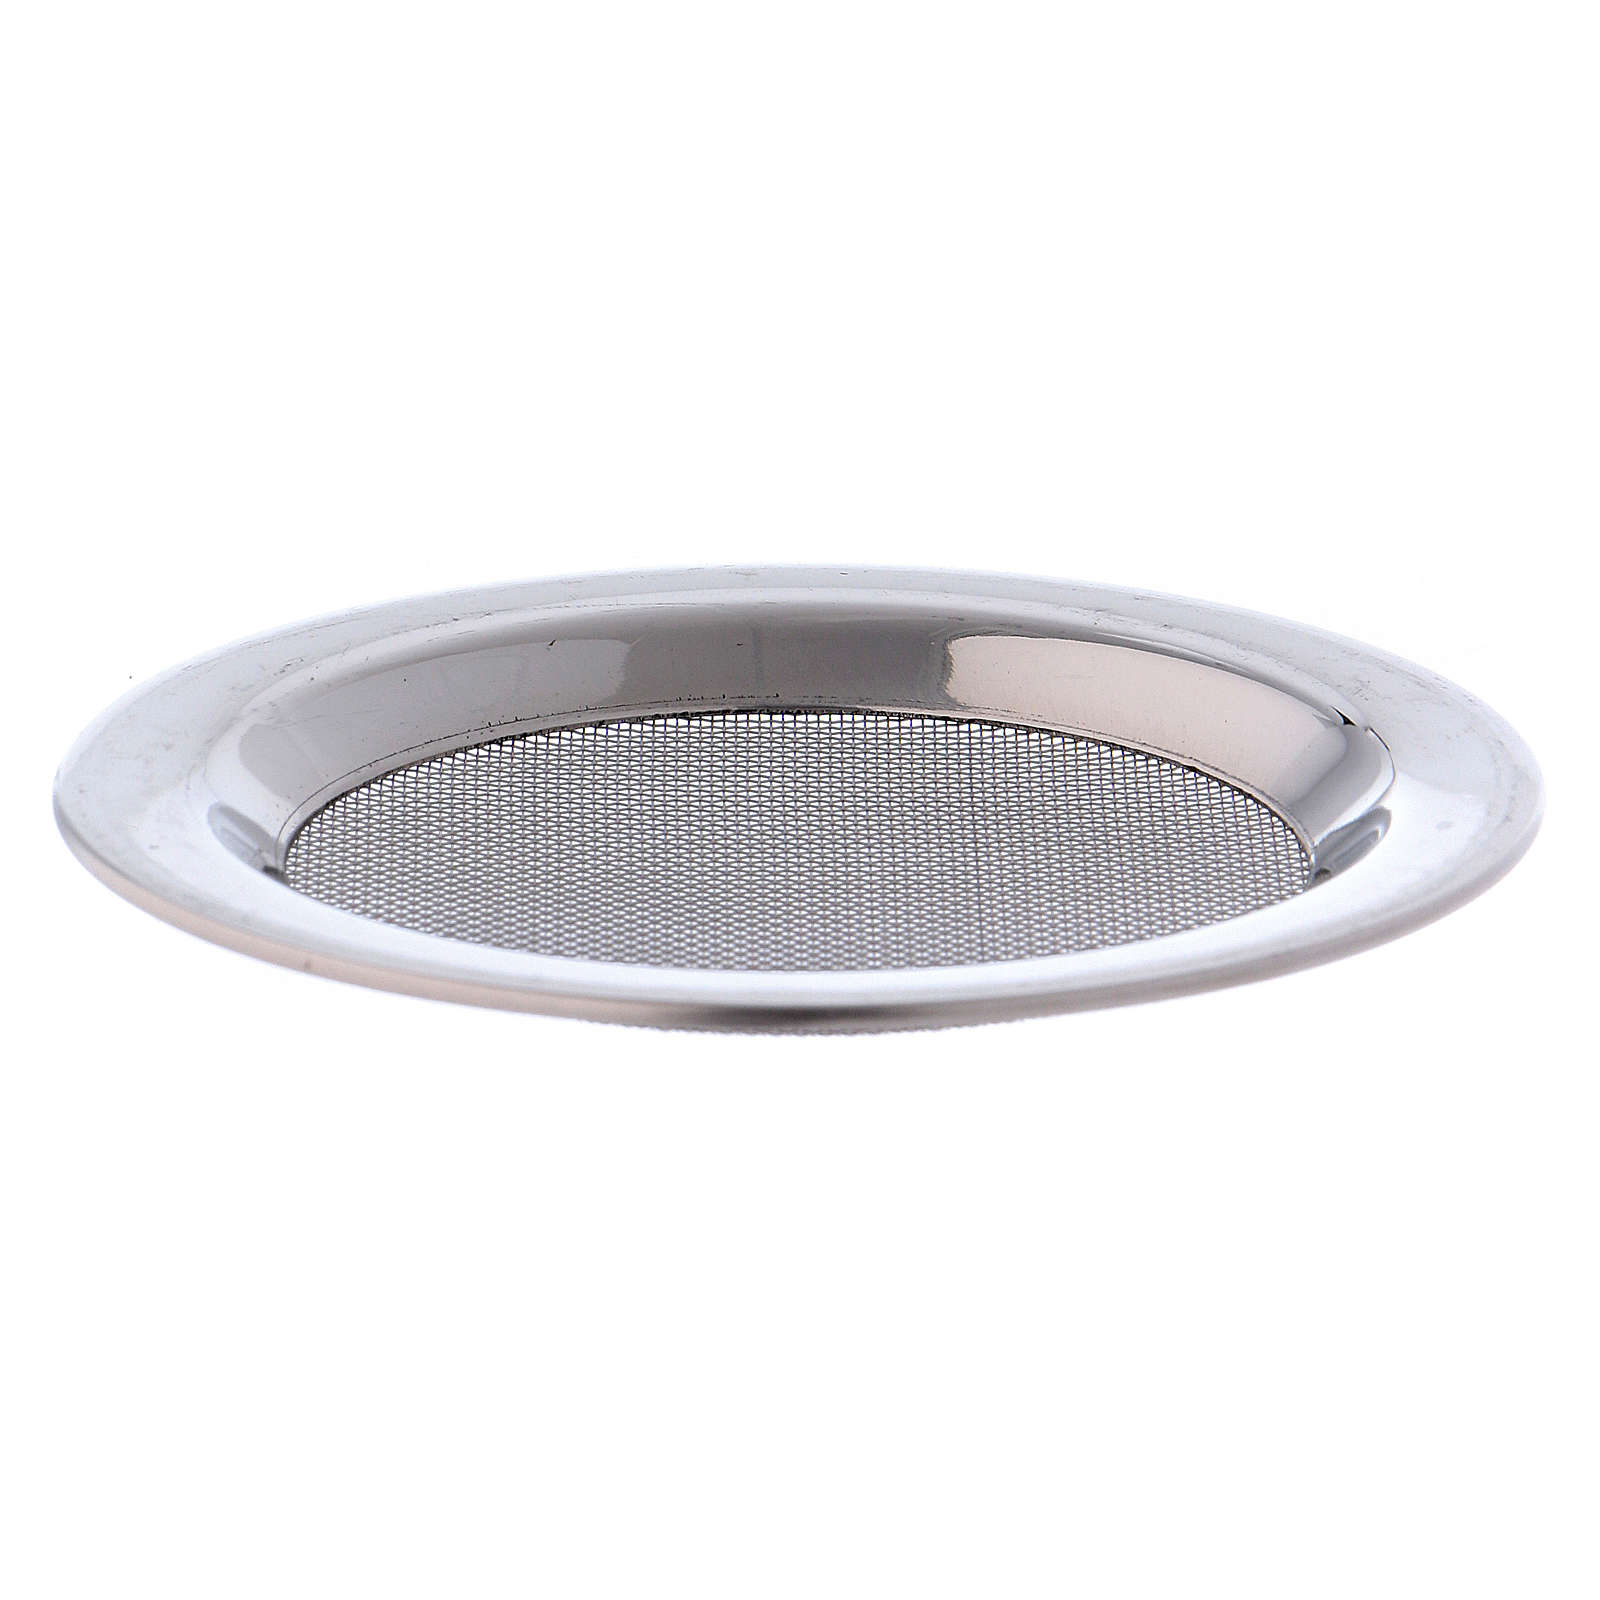 Mesh for incense burner in silver-plated steel diam. 8 cm 3